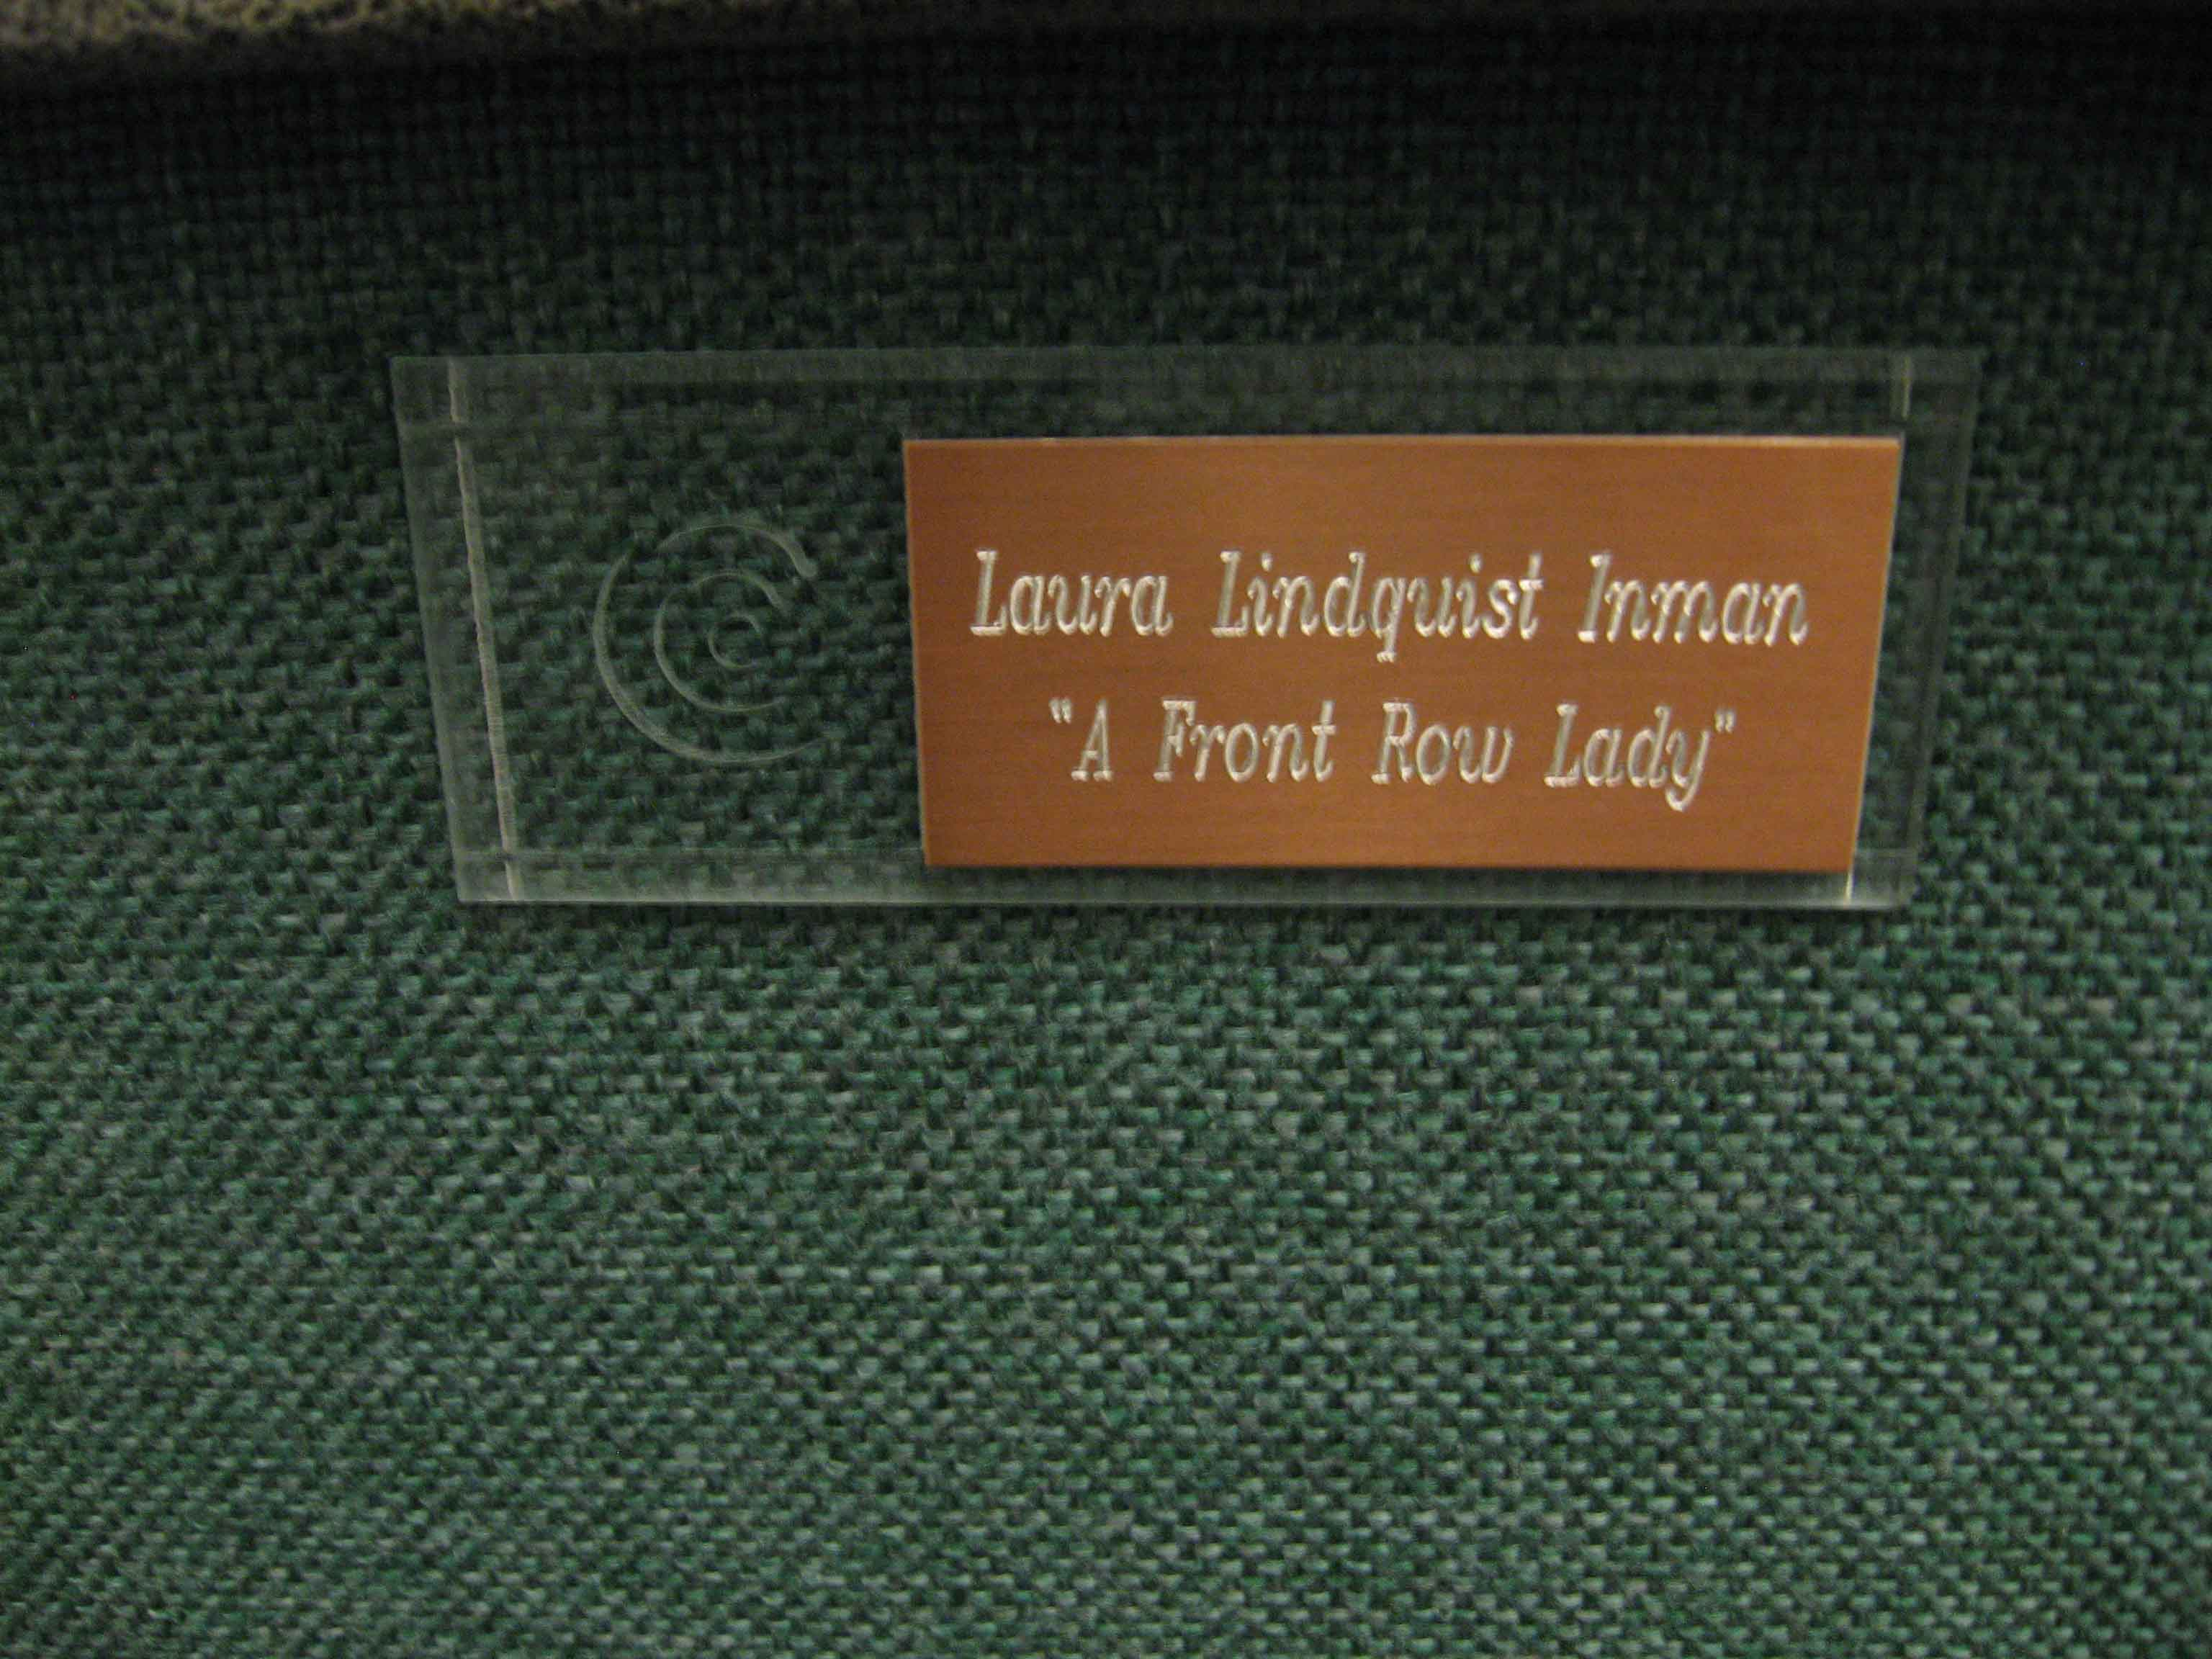 First-Chair-Laura-Lindquist-Inman